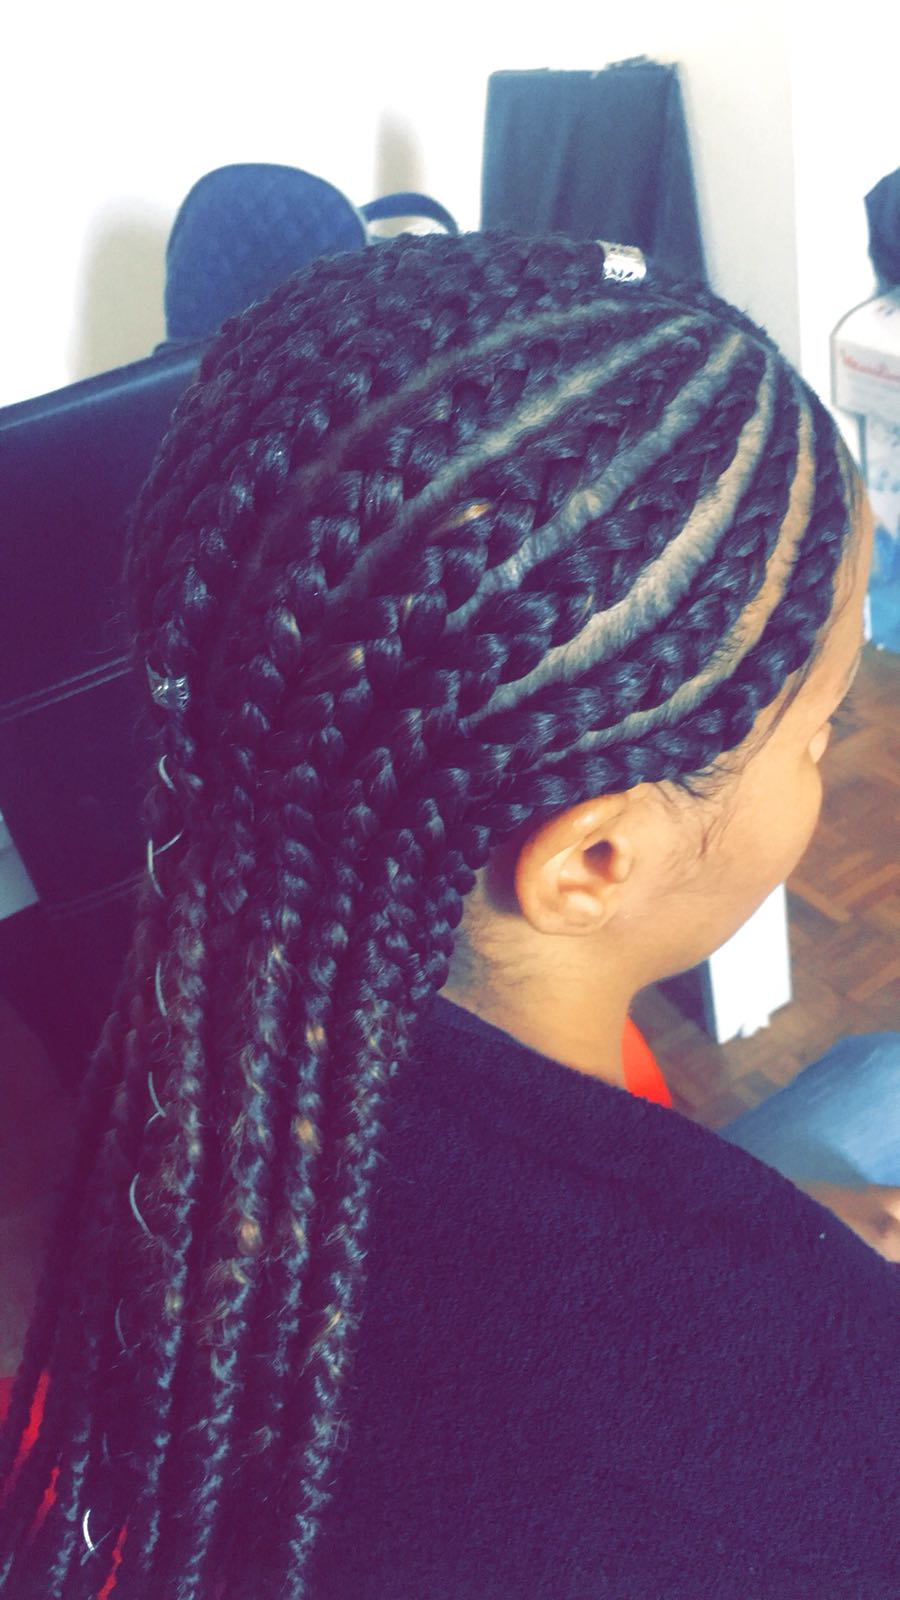 salon de coiffure afro tresse tresses box braids crochet braids vanilles tissages paris 75 77 78 91 92 93 94 95 IUWAQQKN